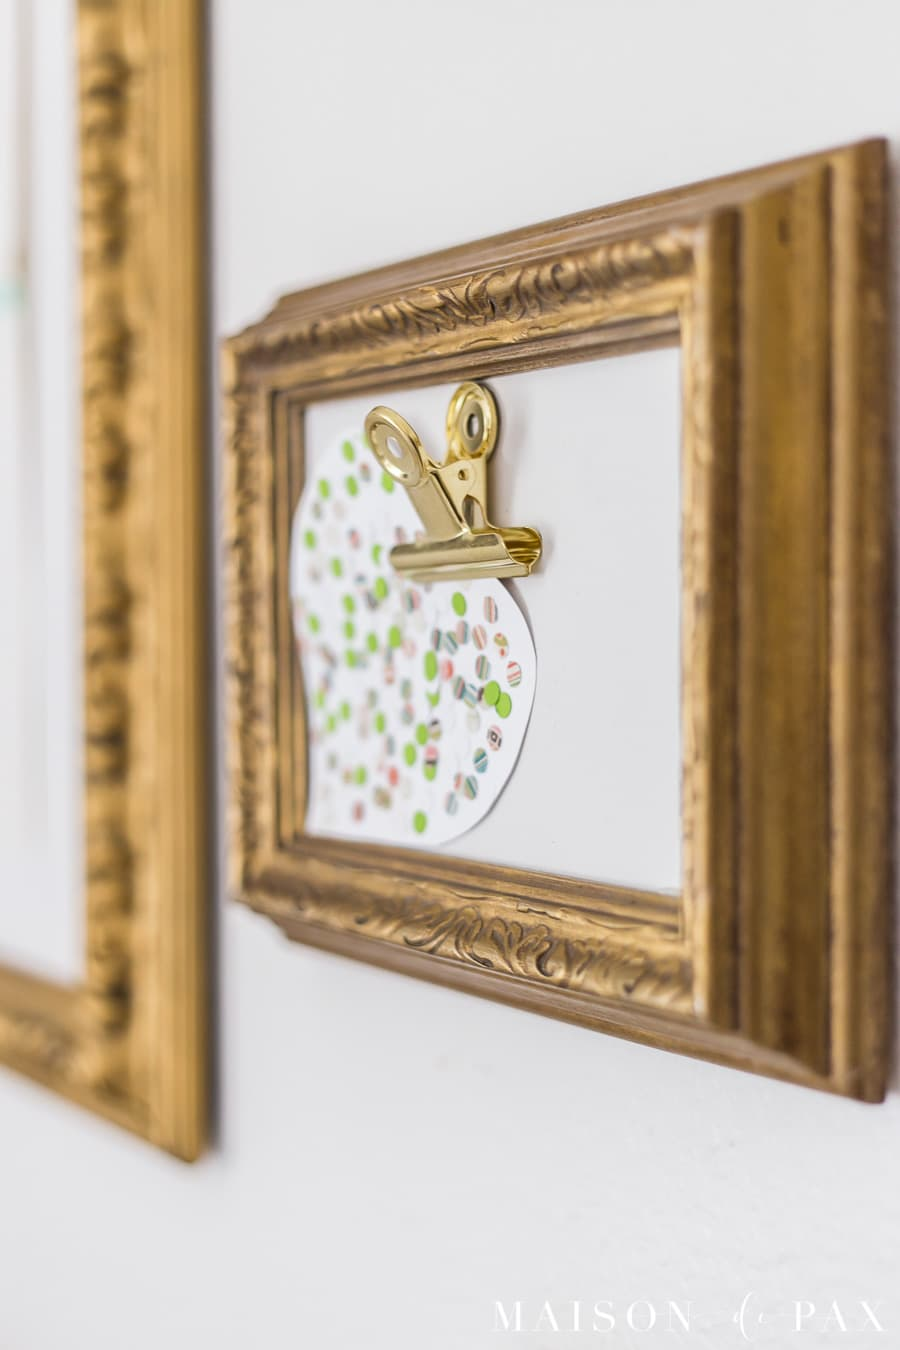 gold frame with clip for displaying artwork | Maison de Pax